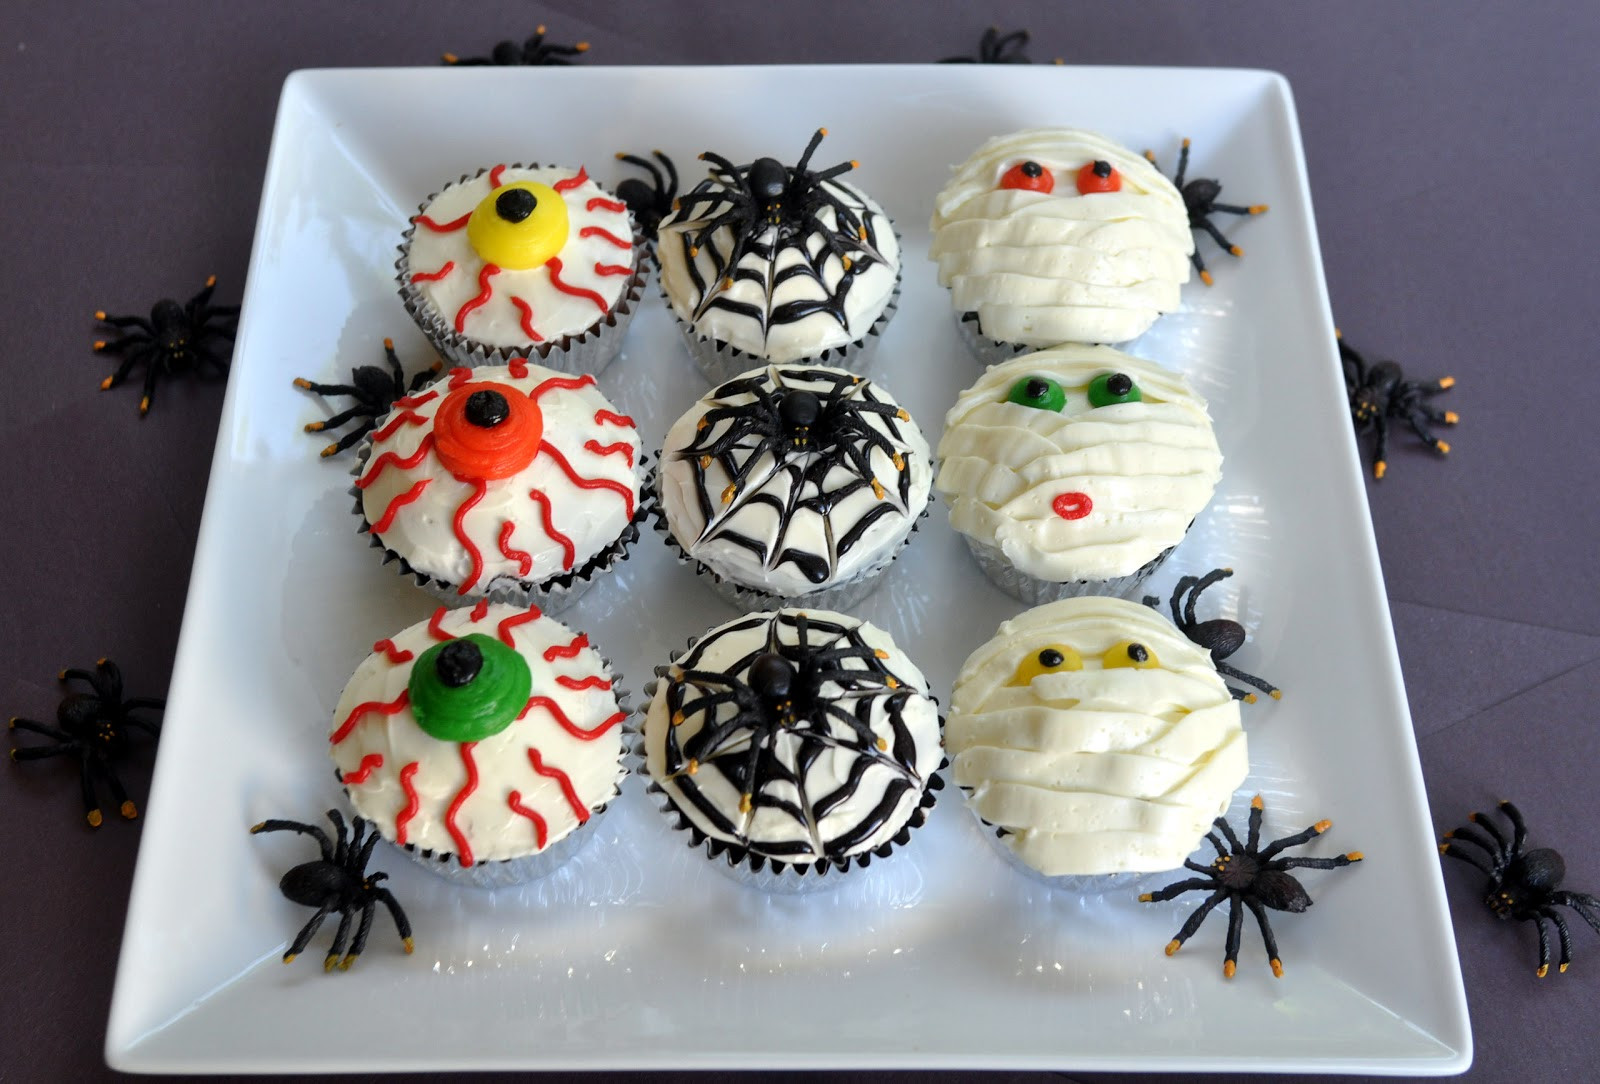 Creepy Halloween Cupcakes  Beki Cook s Cake Blog Halloween Party Treats